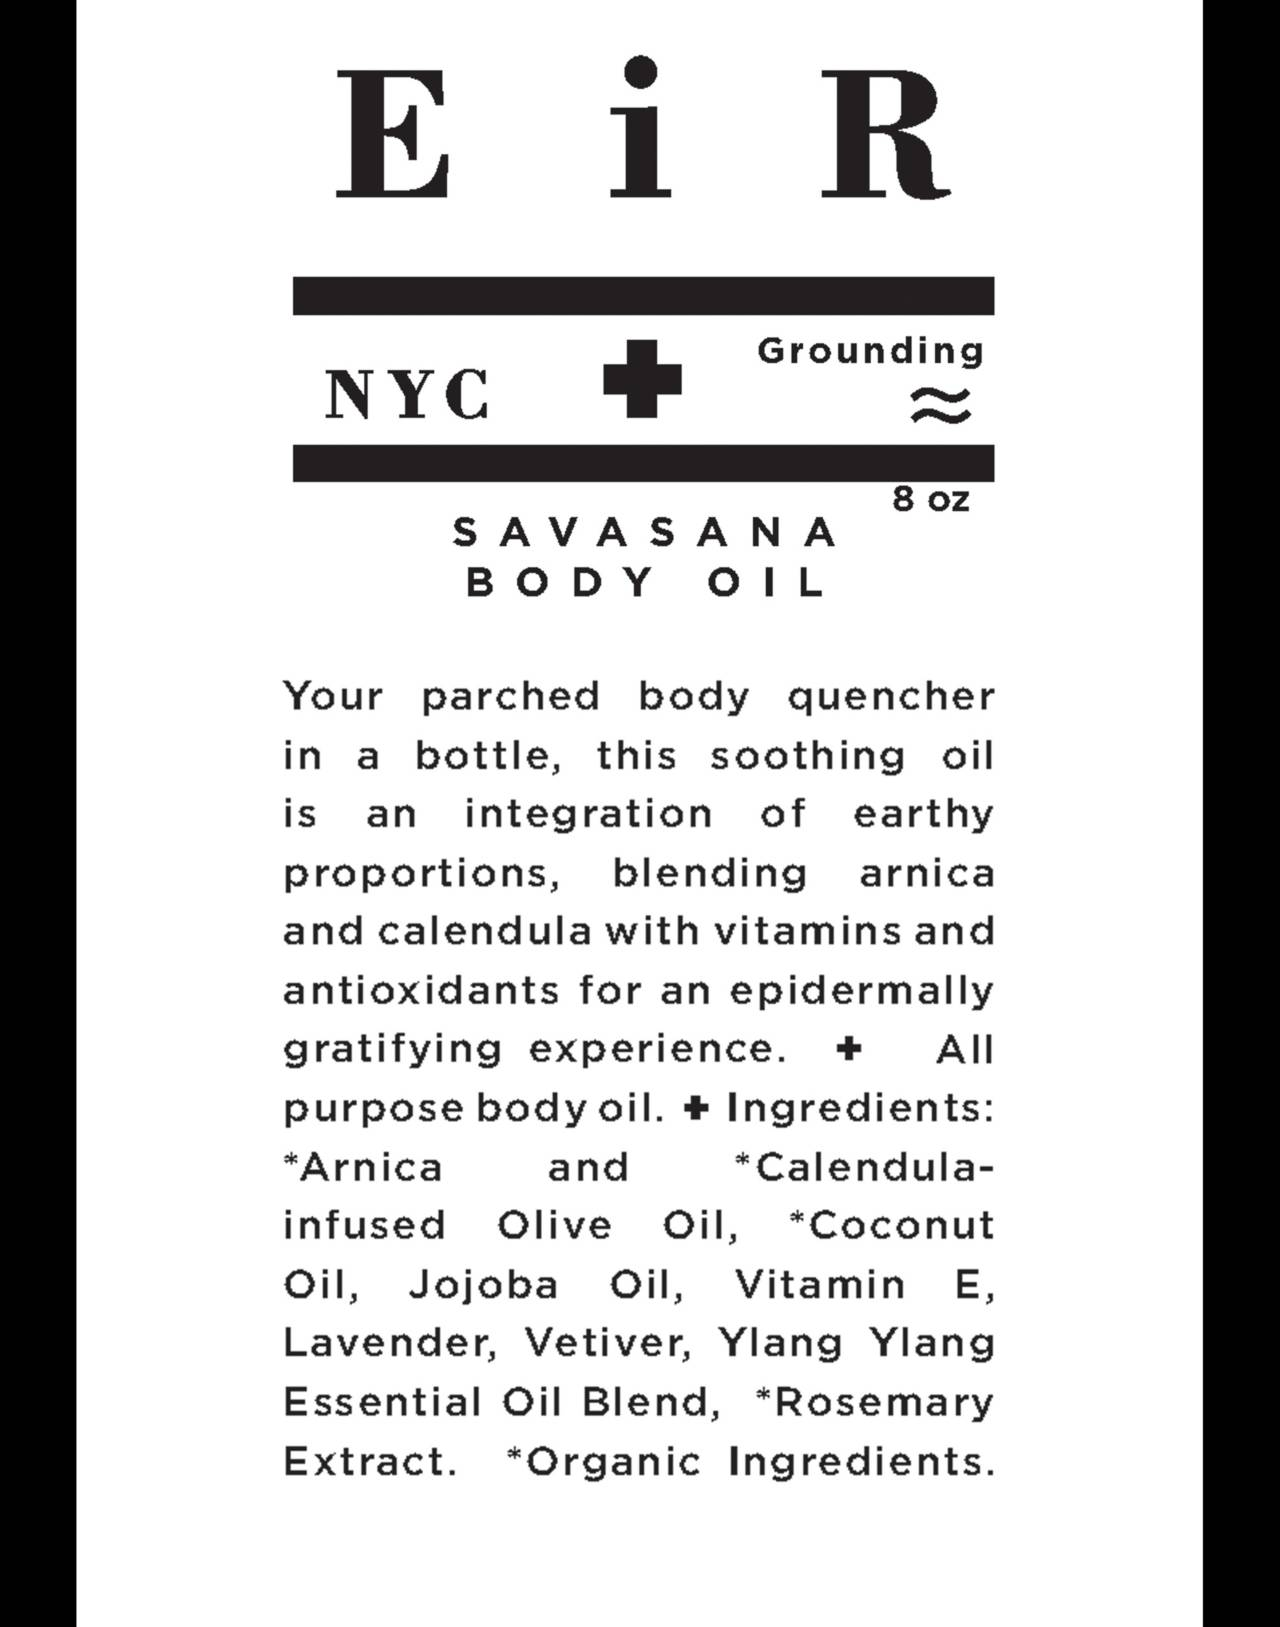 Eir NYC® Savasana Body Oil in one color image 2